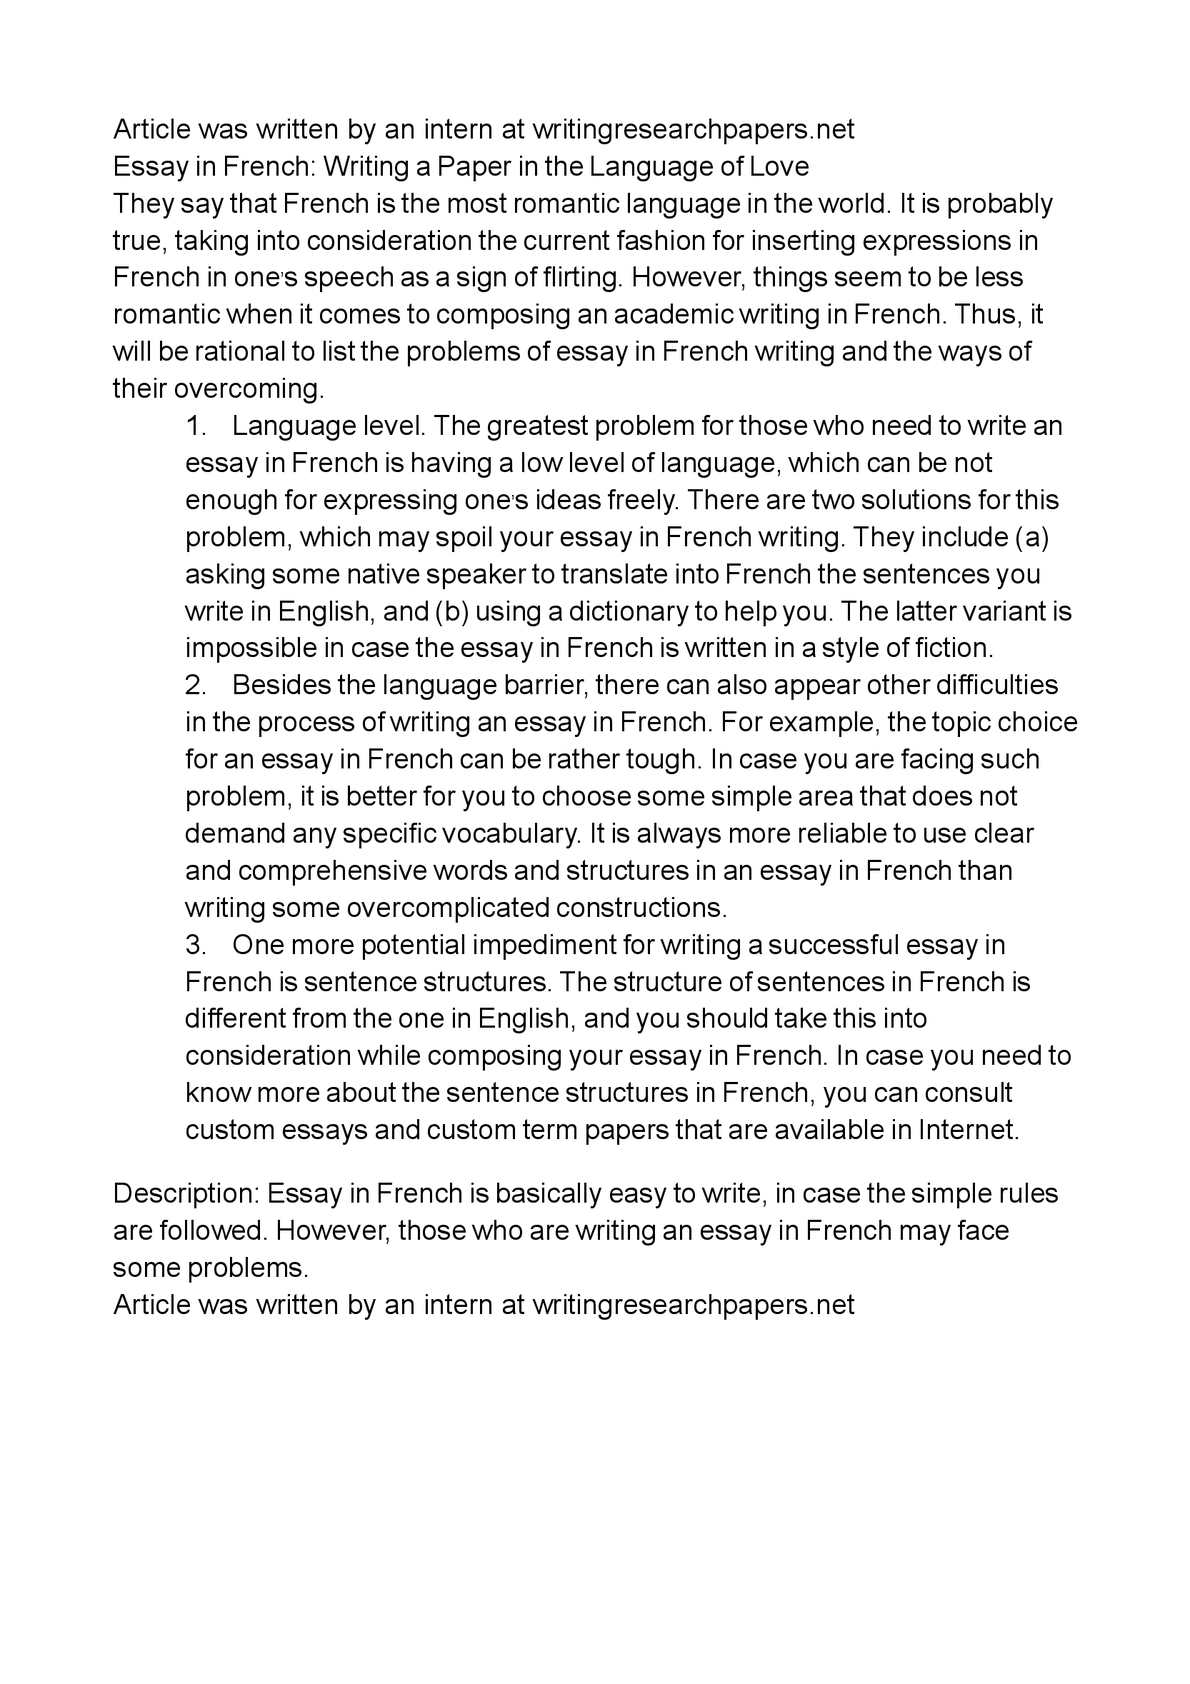 calaméo essay in french writing a paper in the language of love